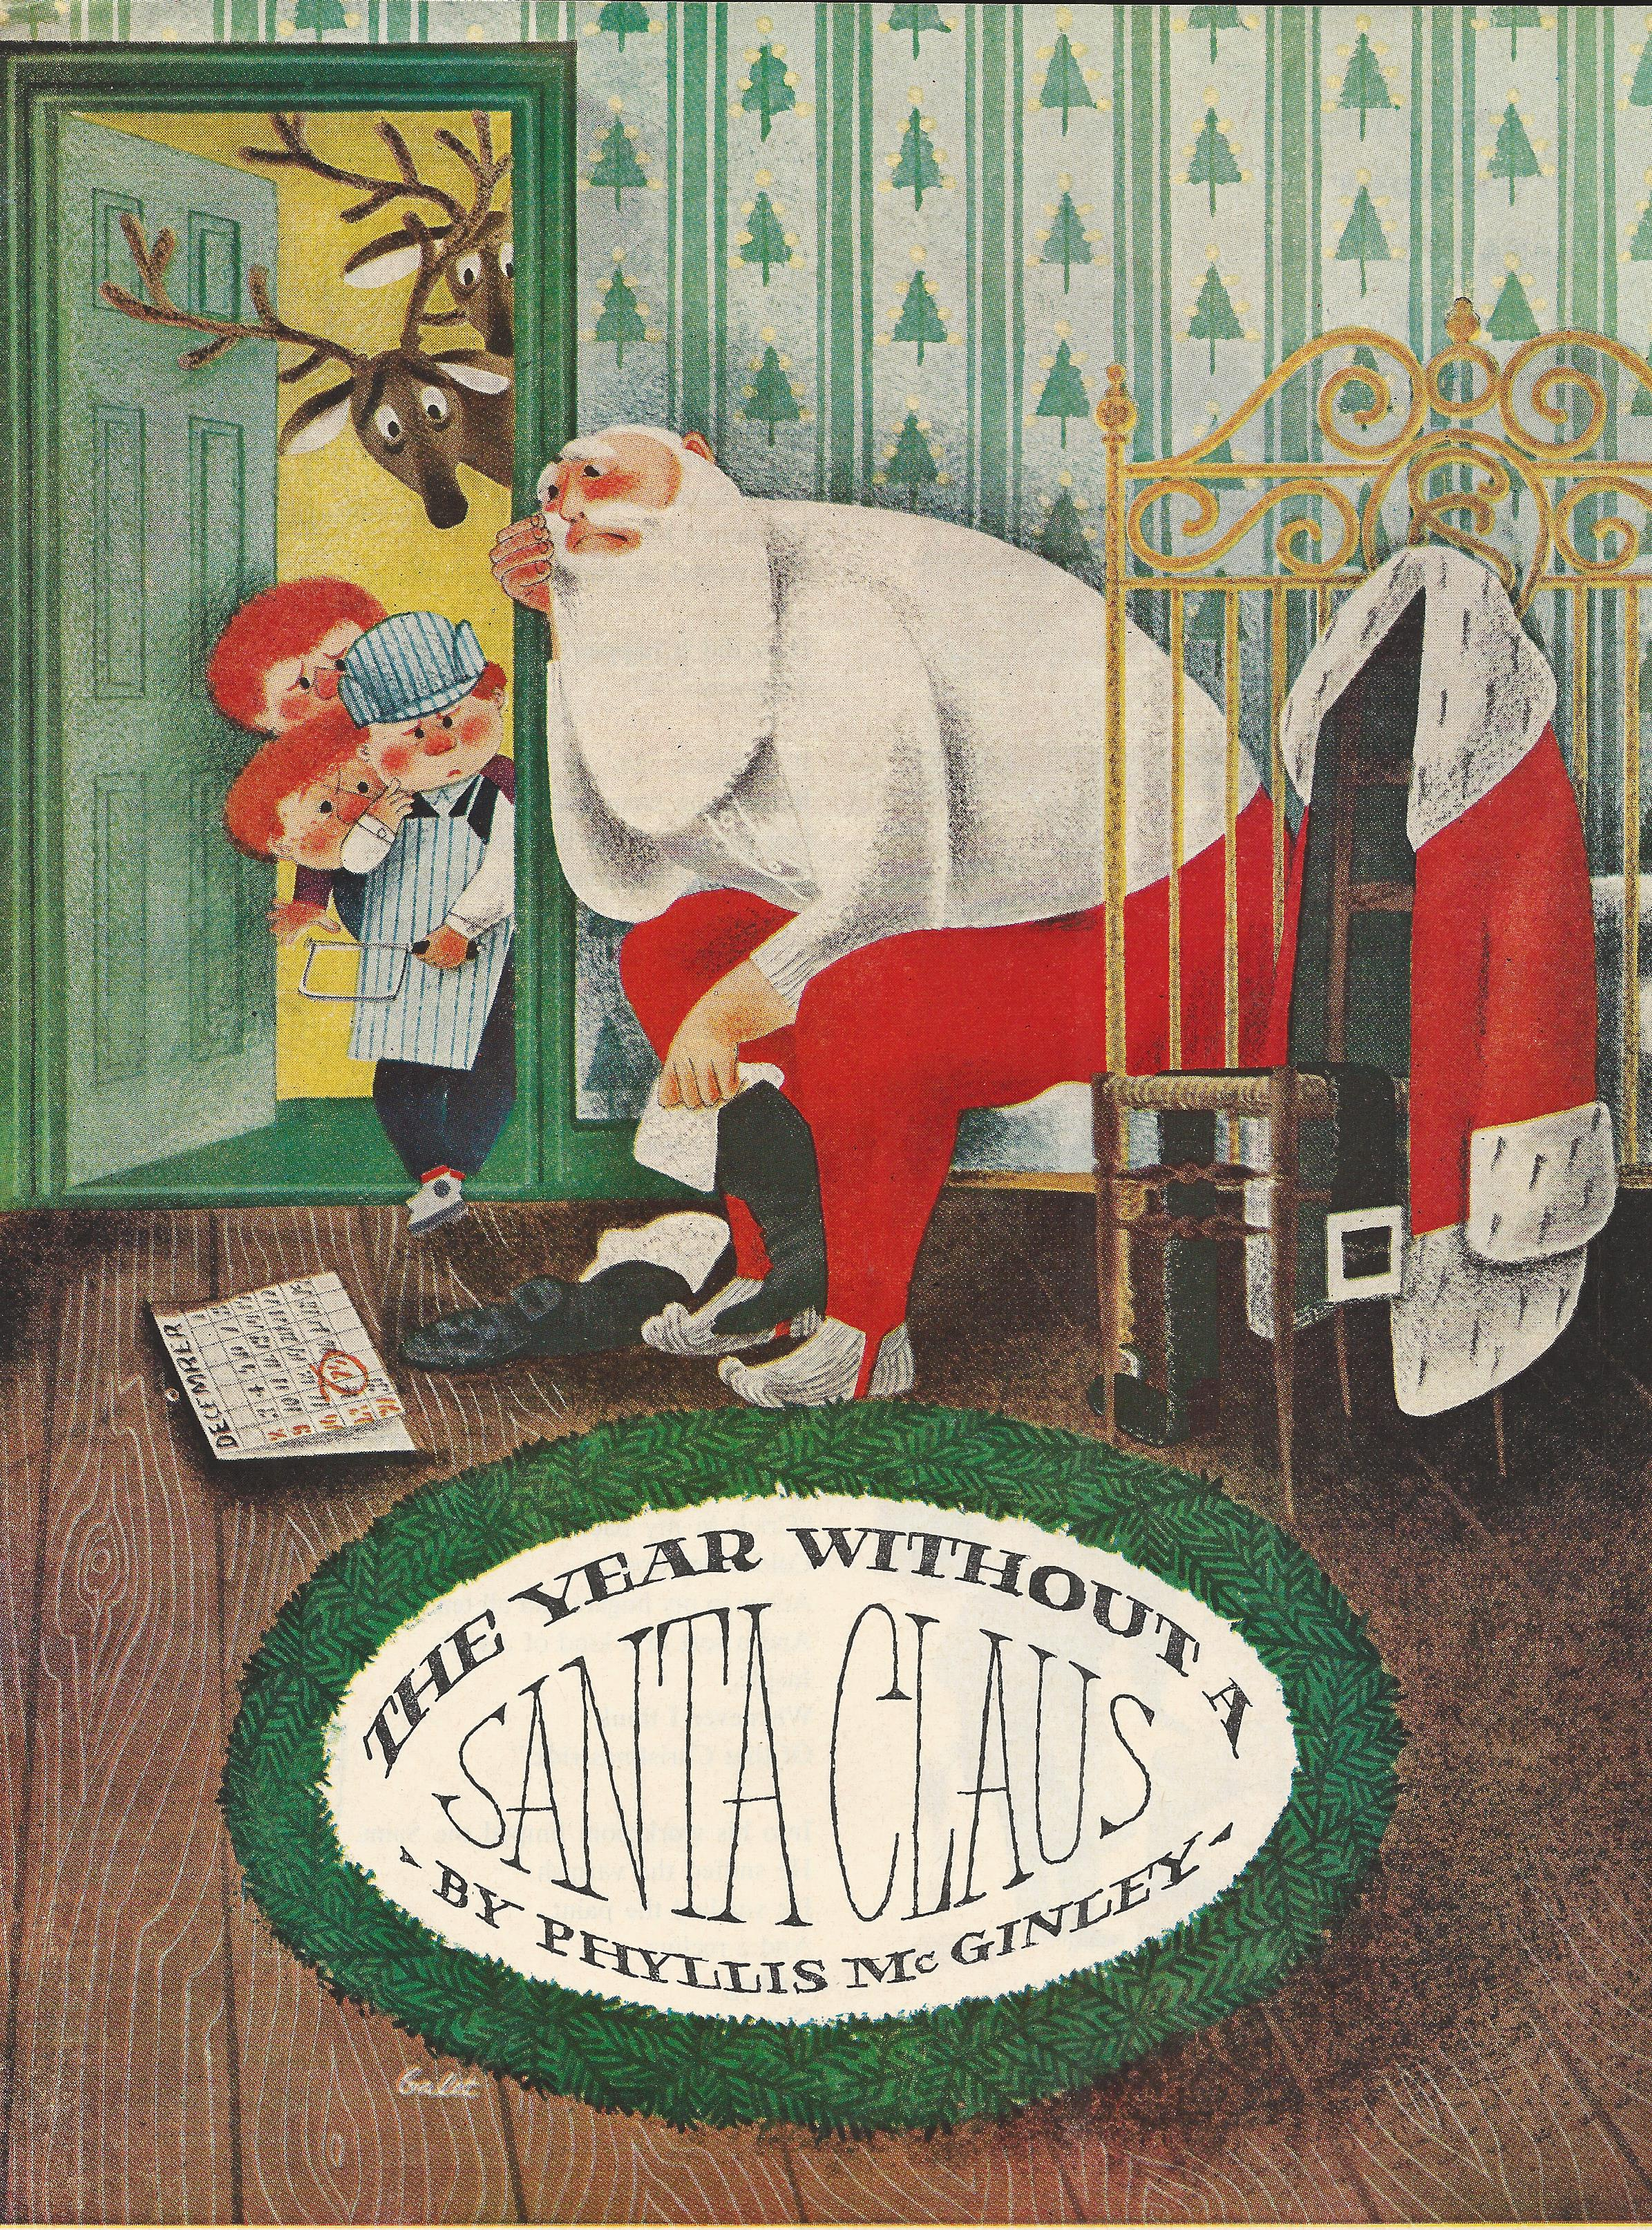 Year Without A Santa, Good Housekeeping, Dec. 1956